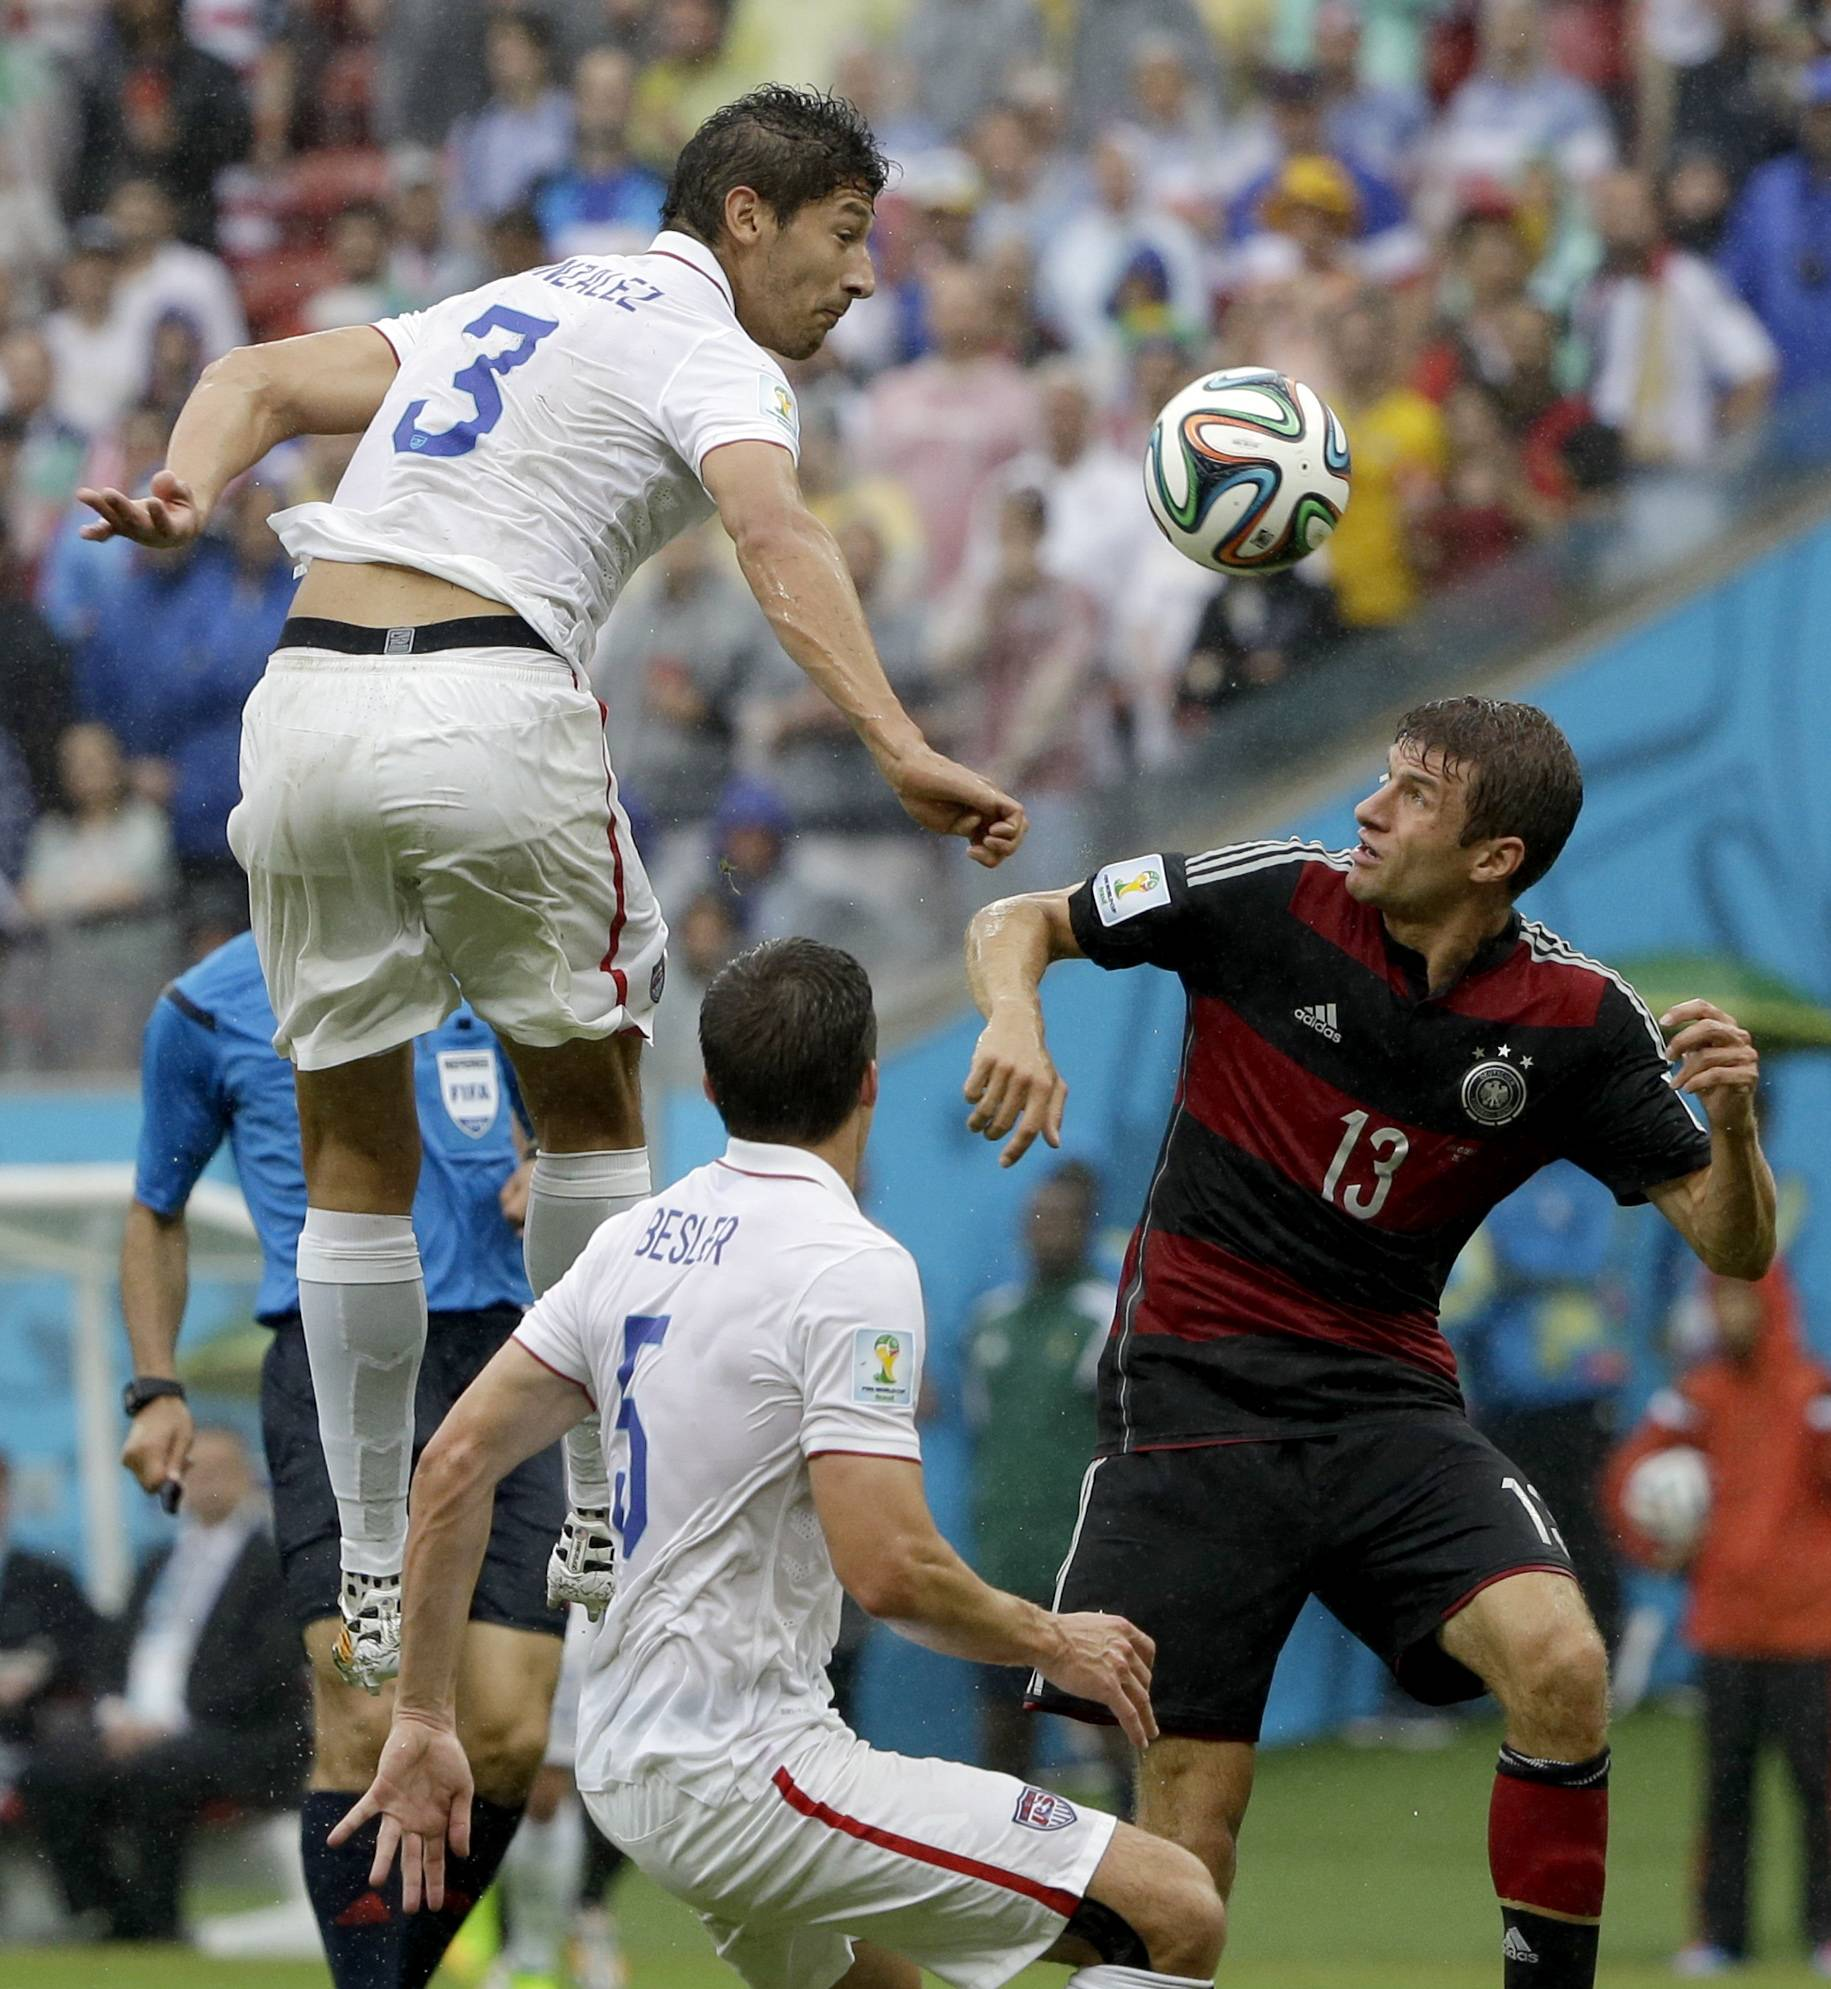 United States defender Omar Gonzalez goes over Germany's Thomas Mueller to head the ball as the United States' Matt Besler looks on during a Group G World Cup at the Arena Pernambuco in Recife, Brazil.